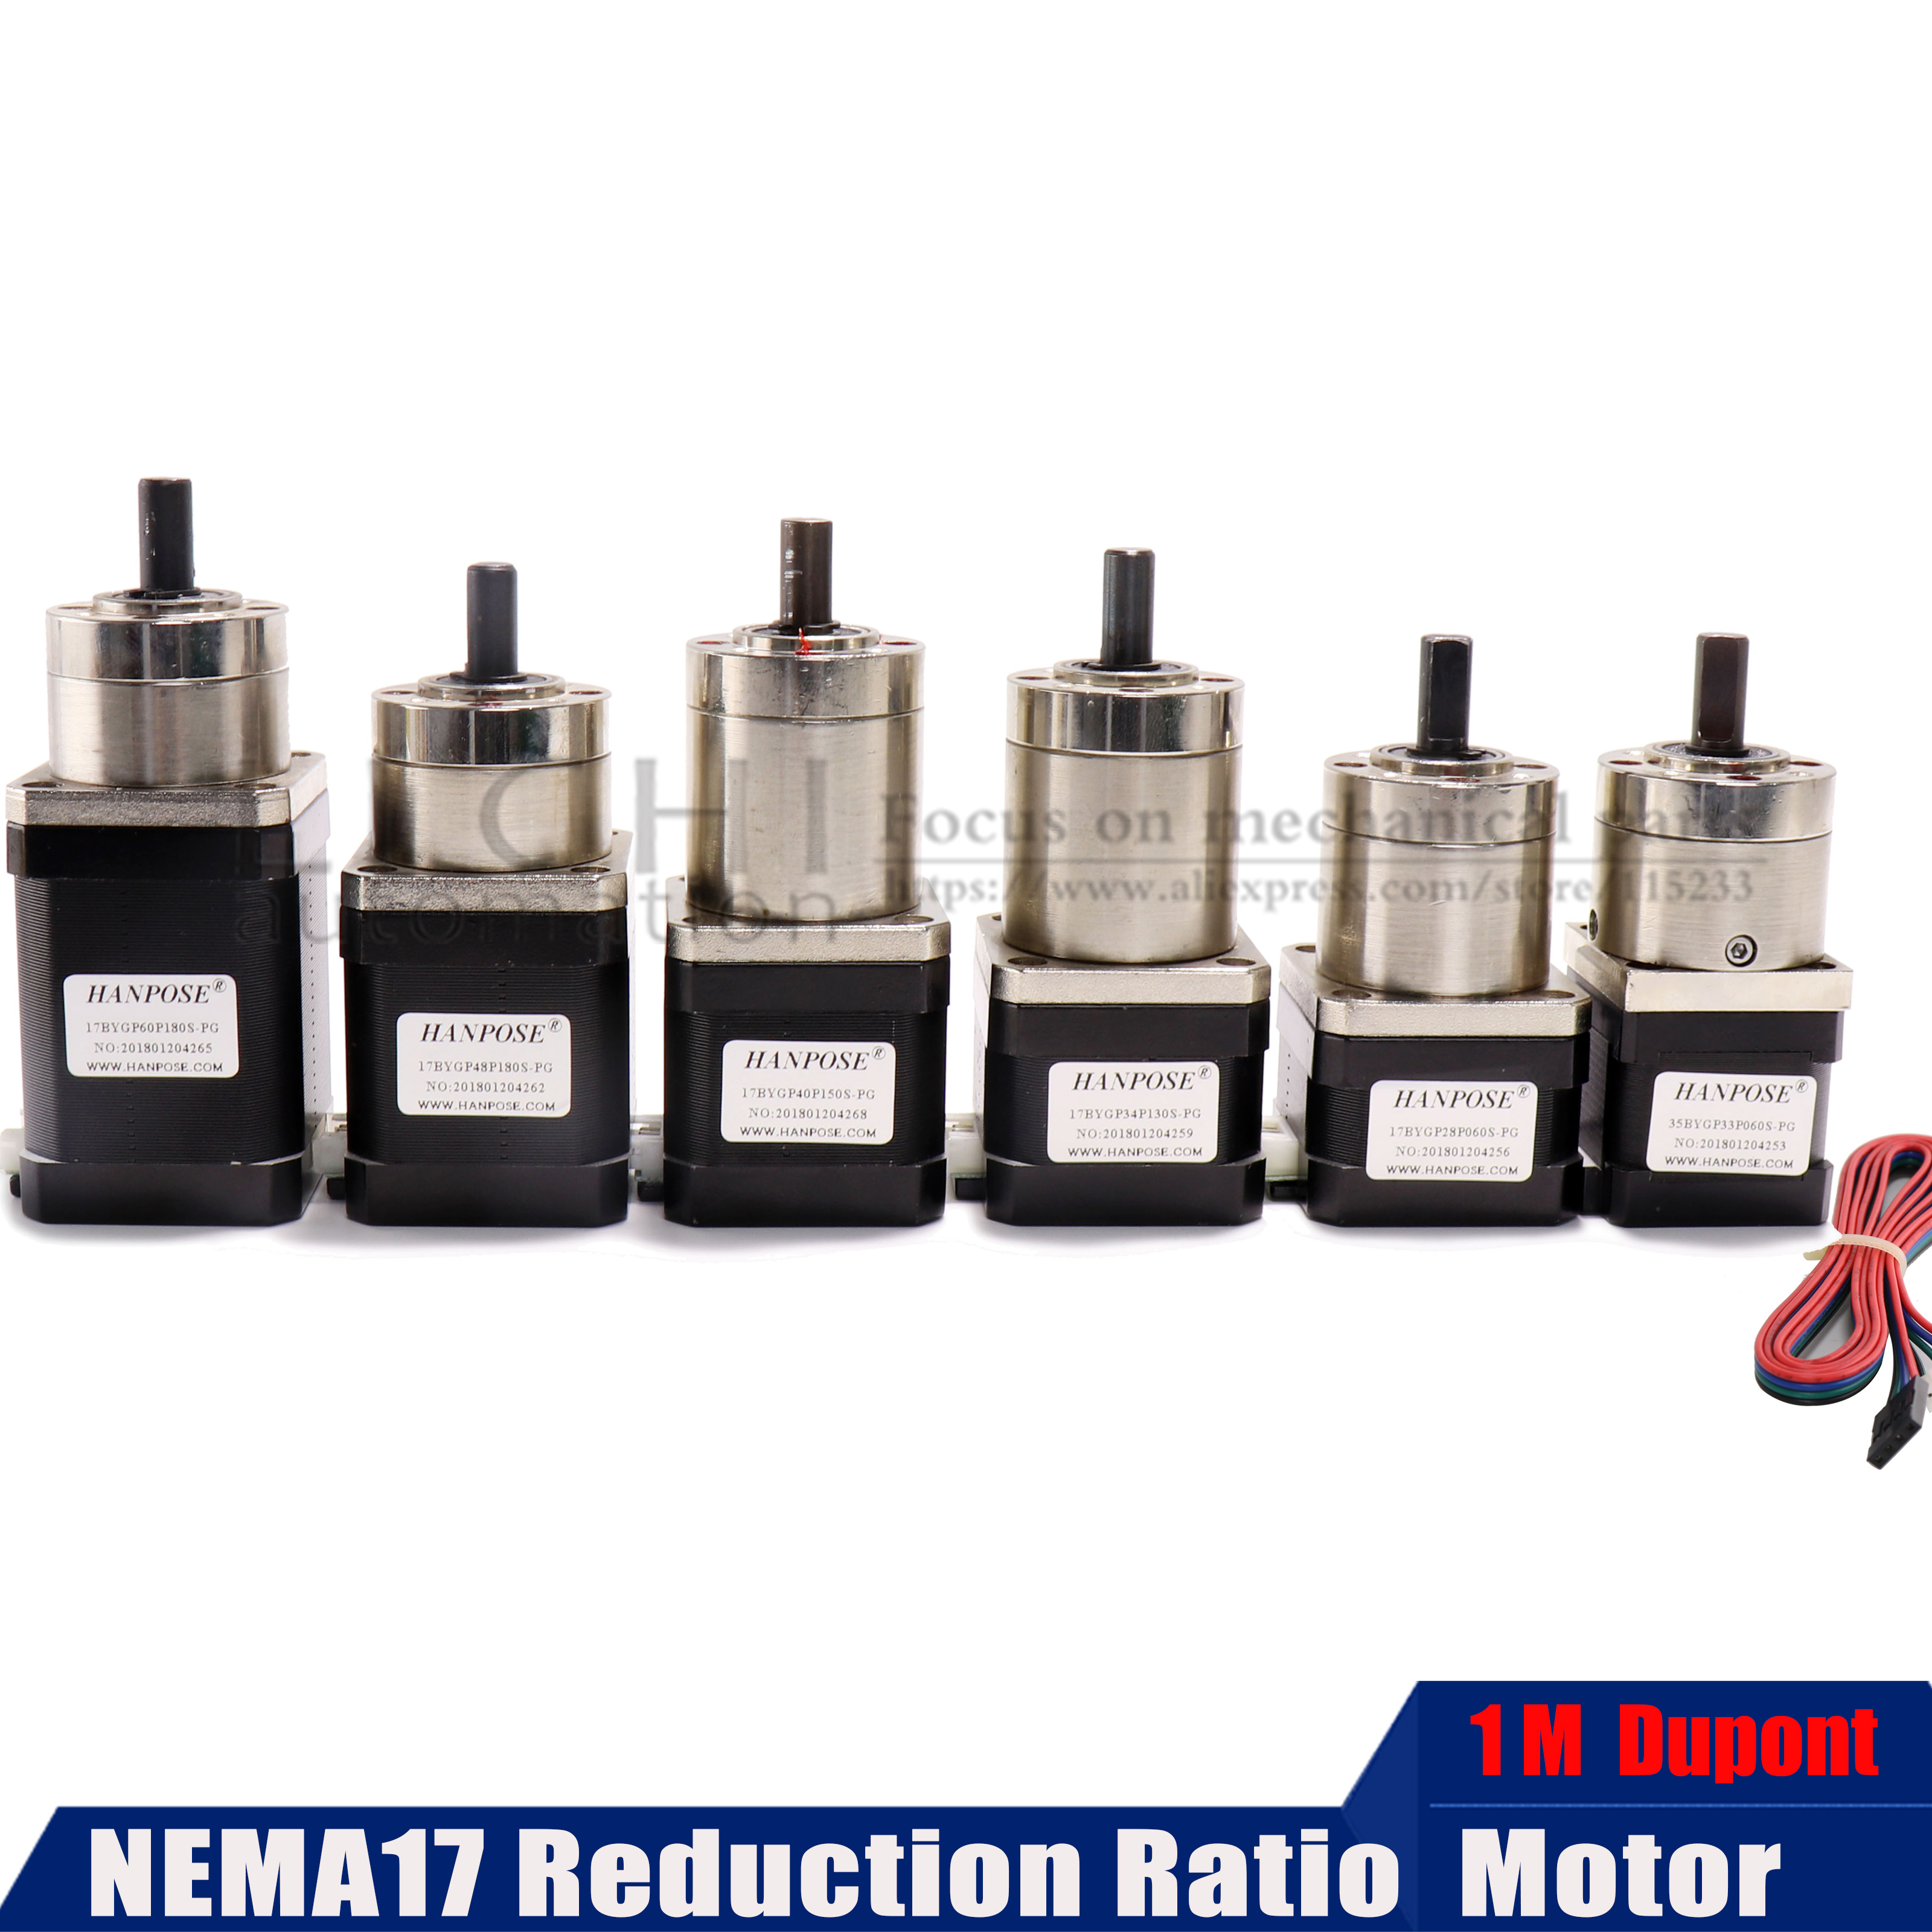 For 3D Printer Stepper Motor Nema 17 Planetary Geared Gearbox All Ratio 17HS2408S 3401S 4401S 6401S 8401S Motor